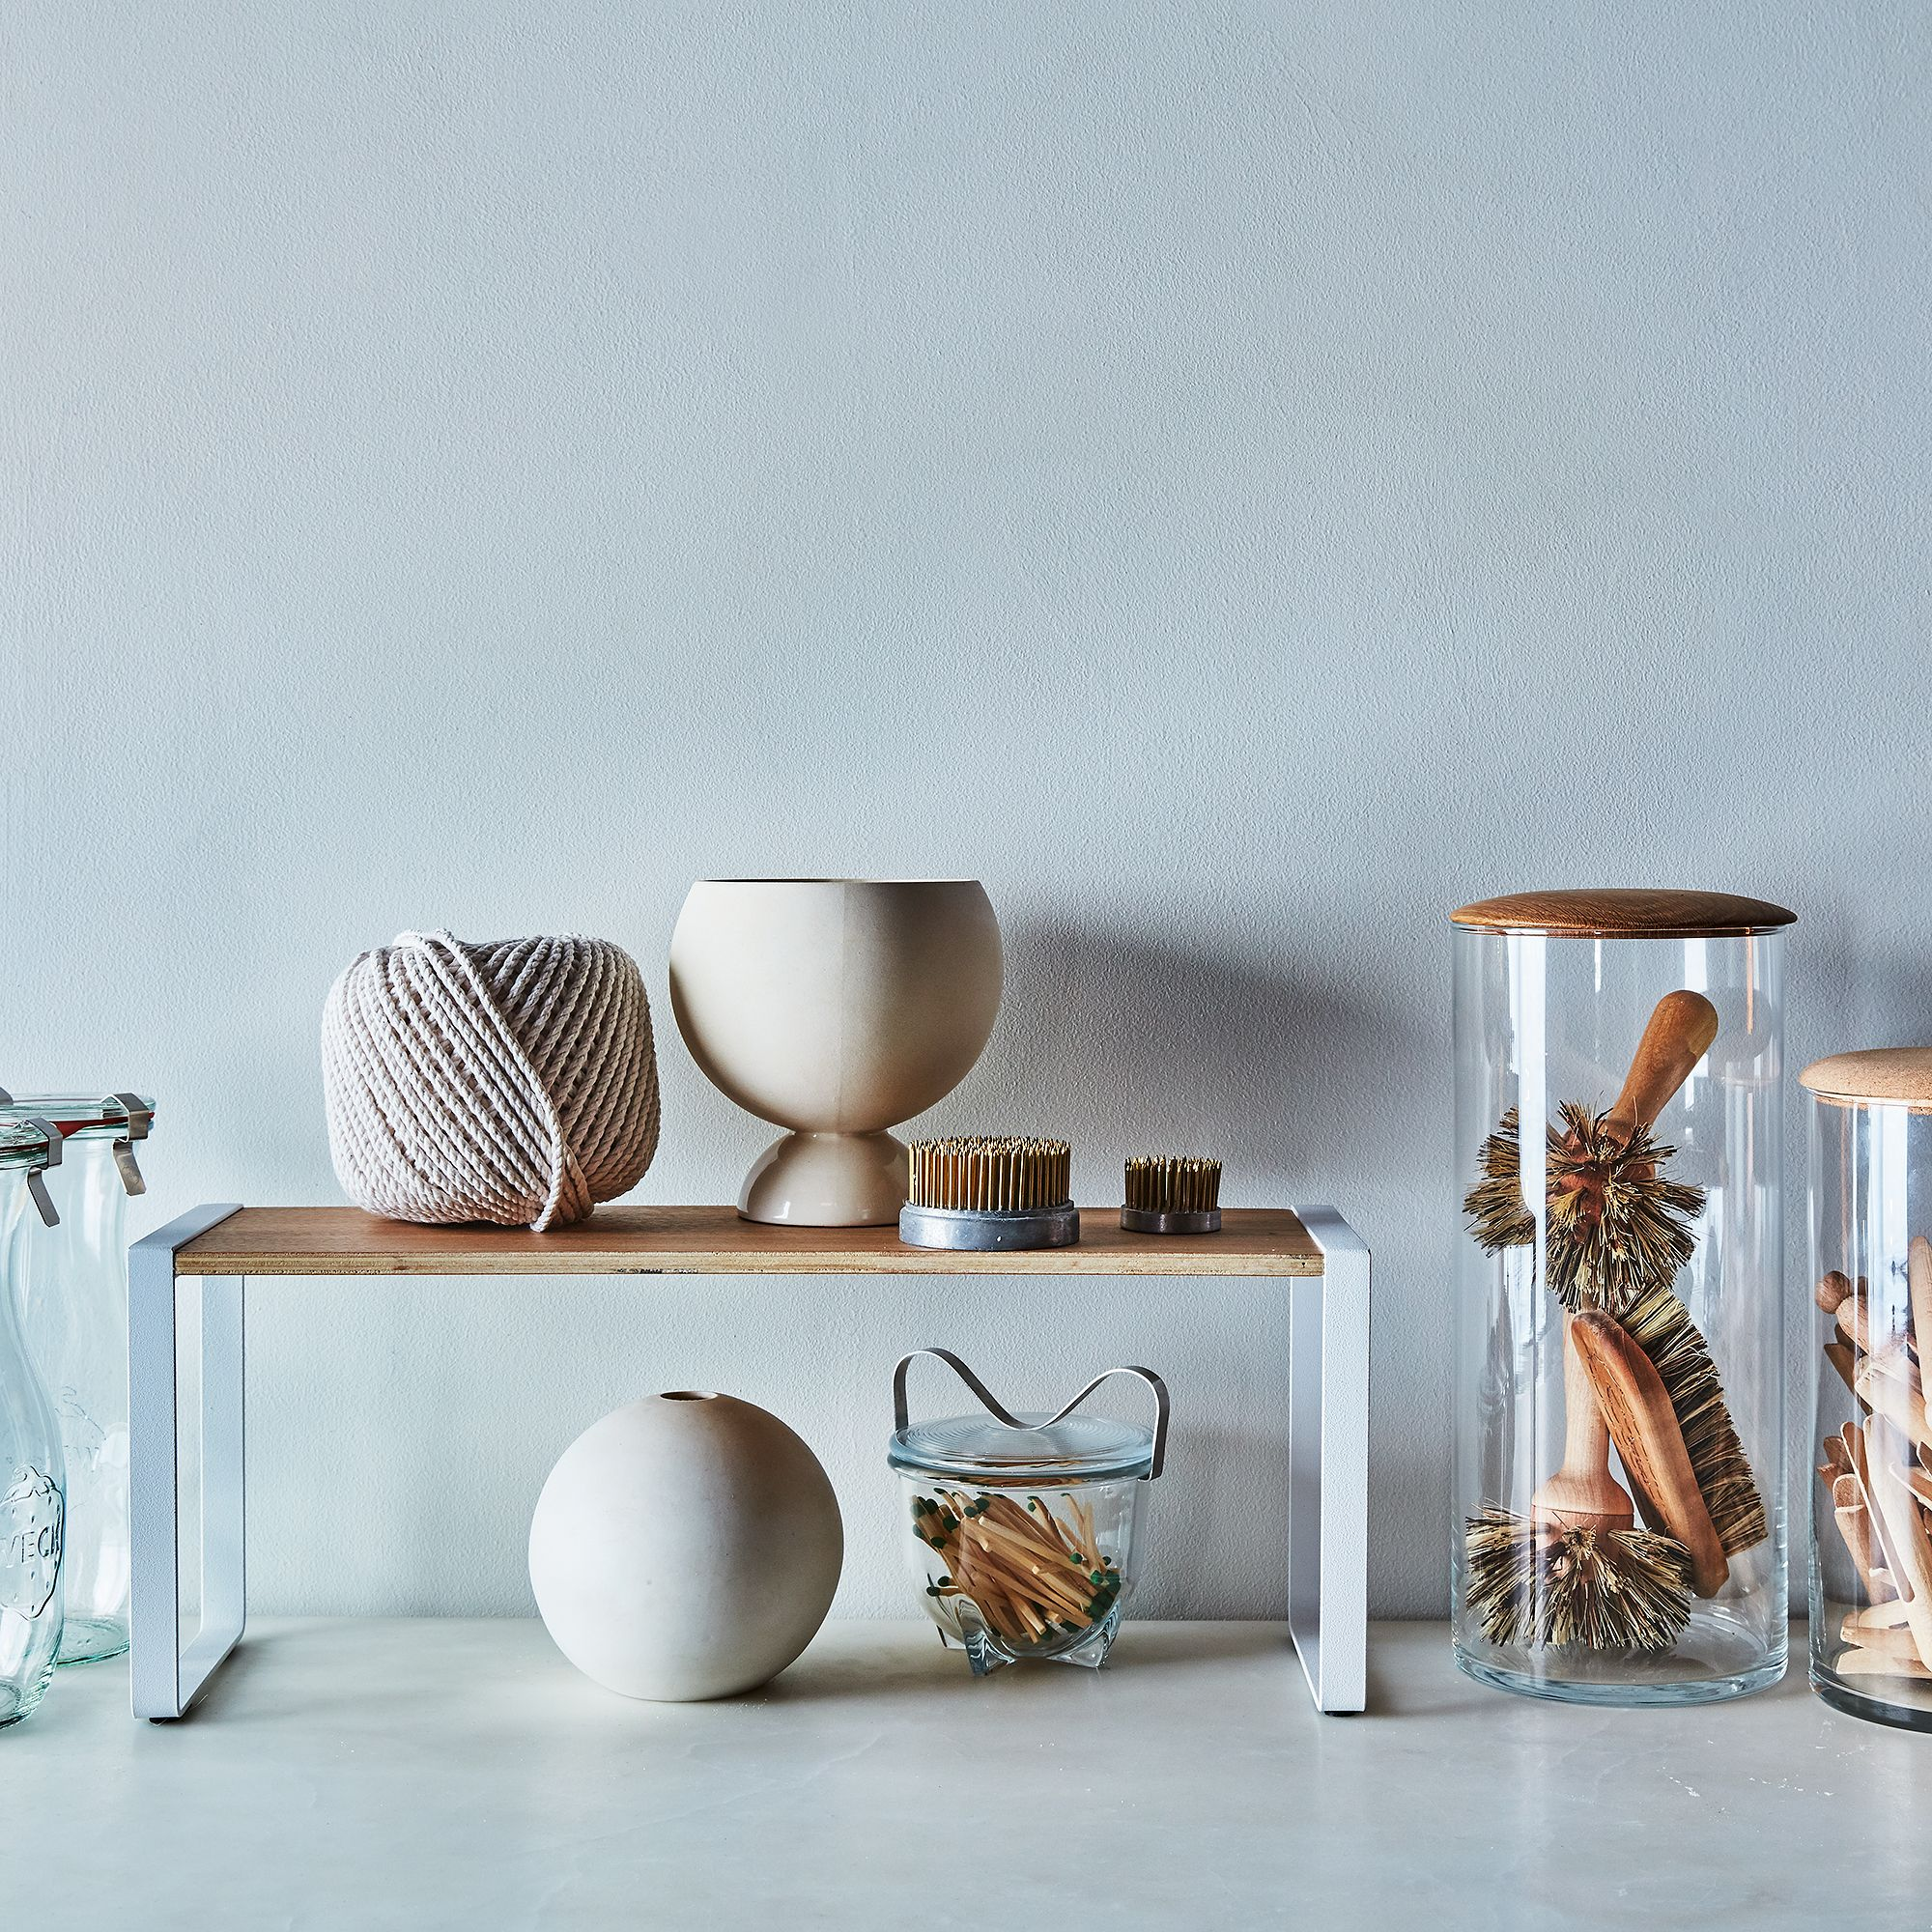 Steel & Wood Kitchen Storage Rack on Food52